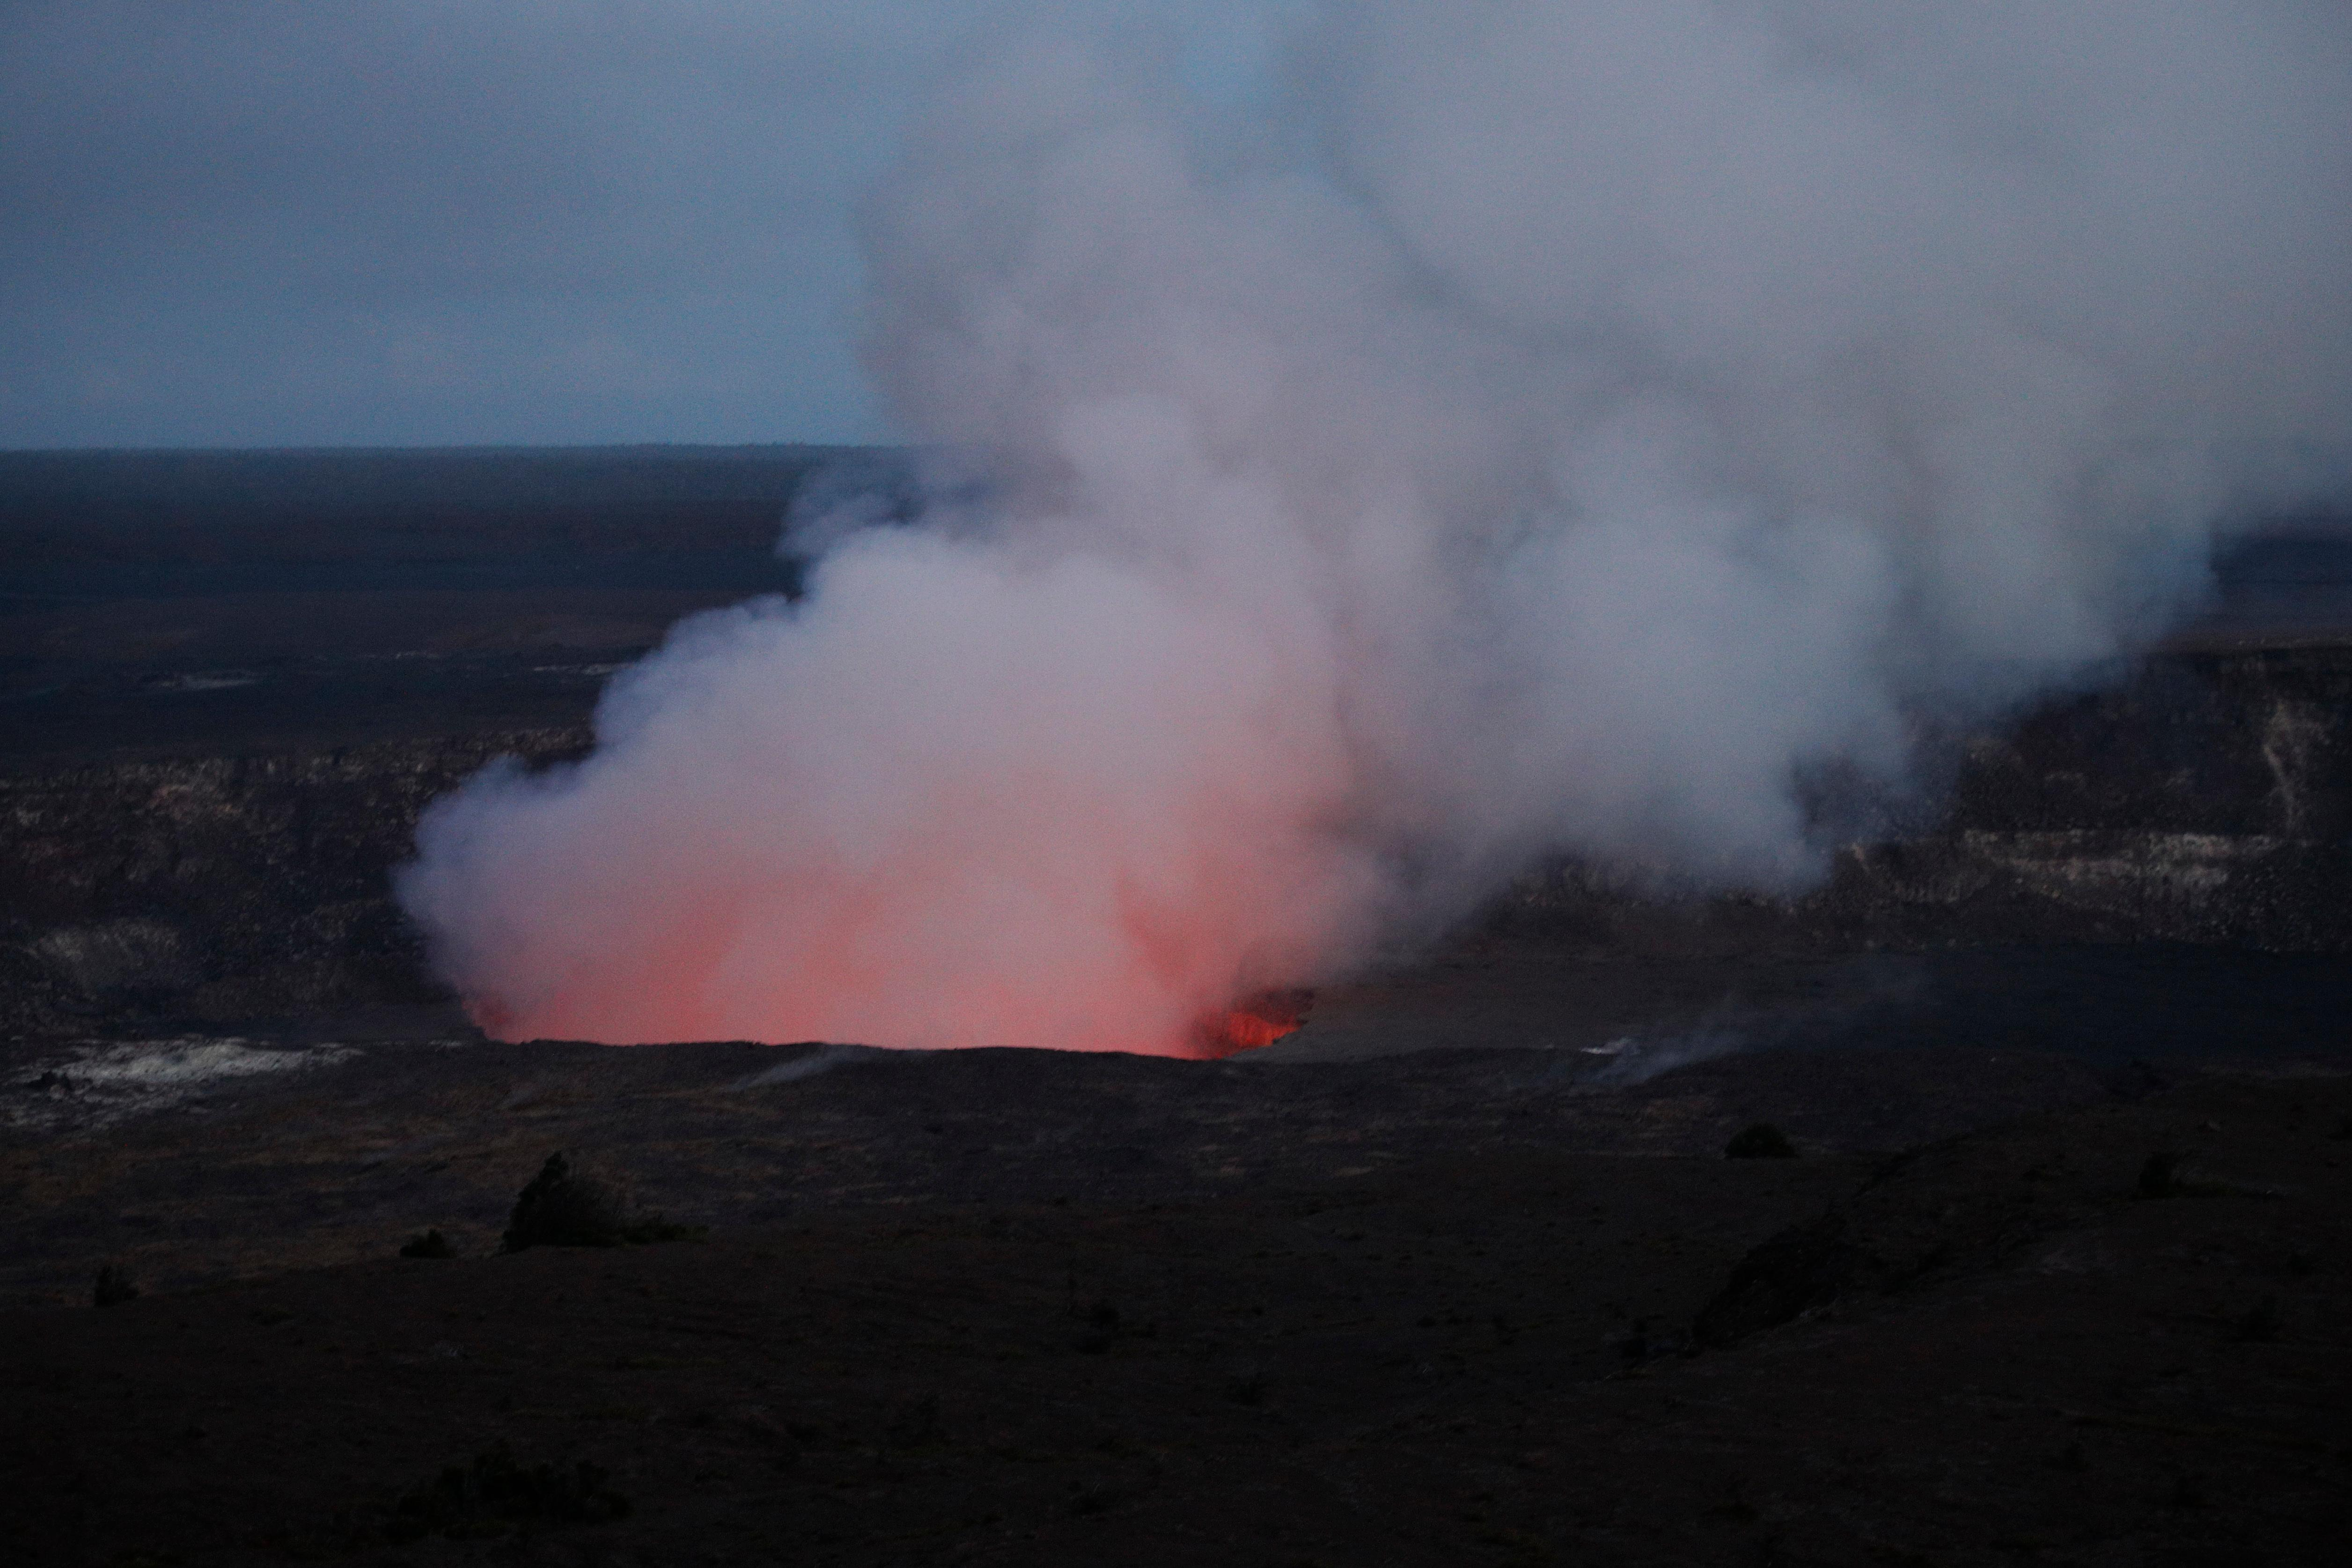 Steam and gas rise from Kilauea's summit crater in Volcanoes National Park, Hawaii, Wednesday, May 9, 2018. Geologists warned Wednesday that Hawaii's Kilauea volcano could erupt explosively and send boulders, rocks and ash into the air around its summit in the coming weeks. (AP Photo/Jae C. Hong)